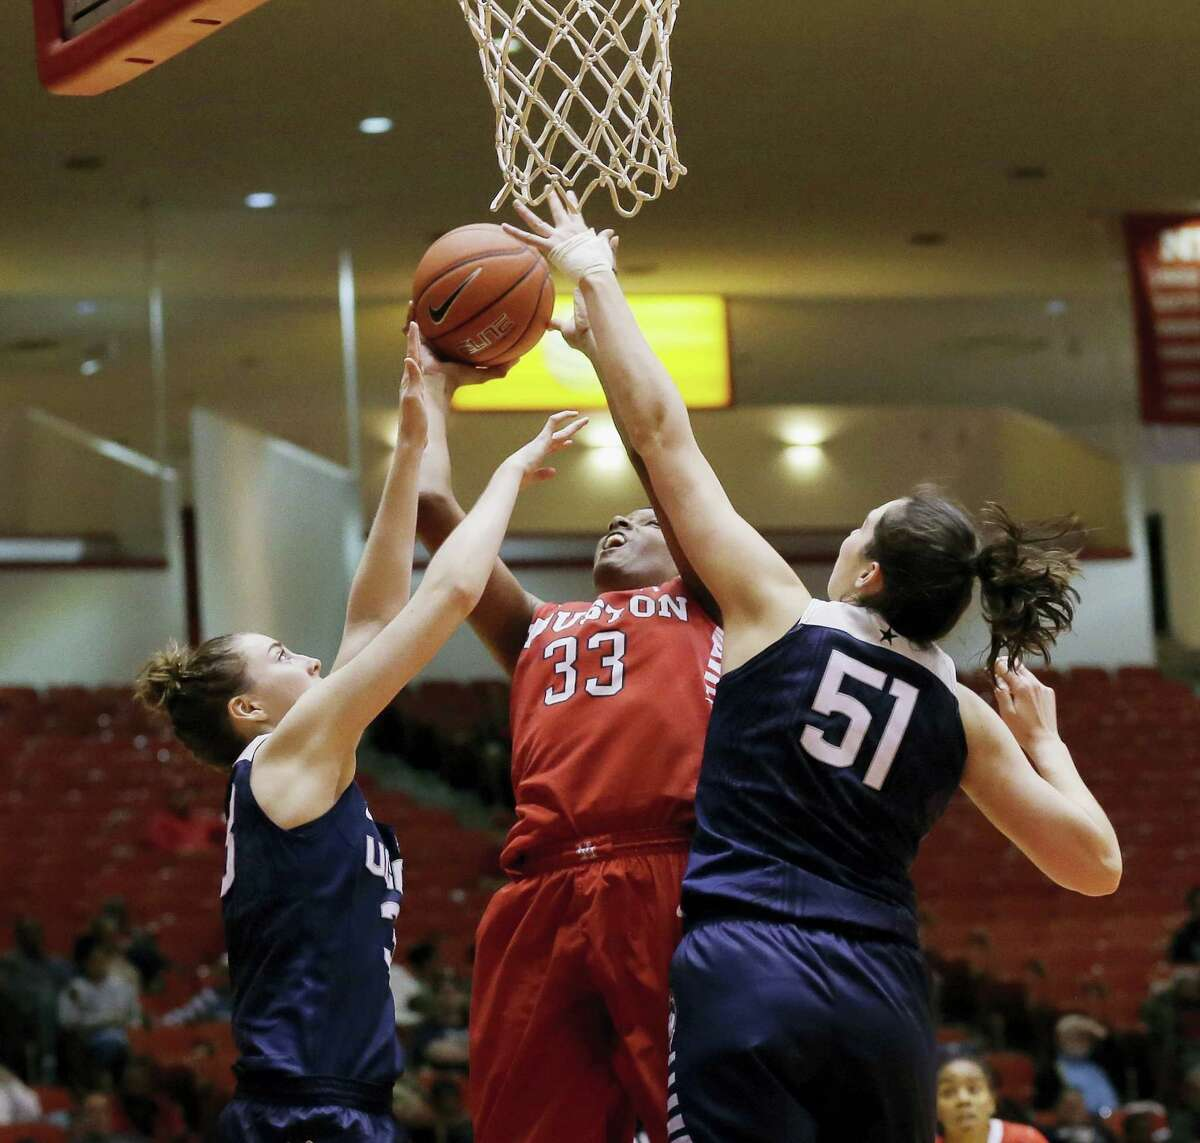 Houston forward Tyler Gilbert (33) shoots over Connecticut guard/forward Katie Lou Samuelson, left, and center Natalie Butler (51) during the second half of an NCAA college basketball game Friday, Jan. 8, 2016, in Houston. Connecticut won 76-37.